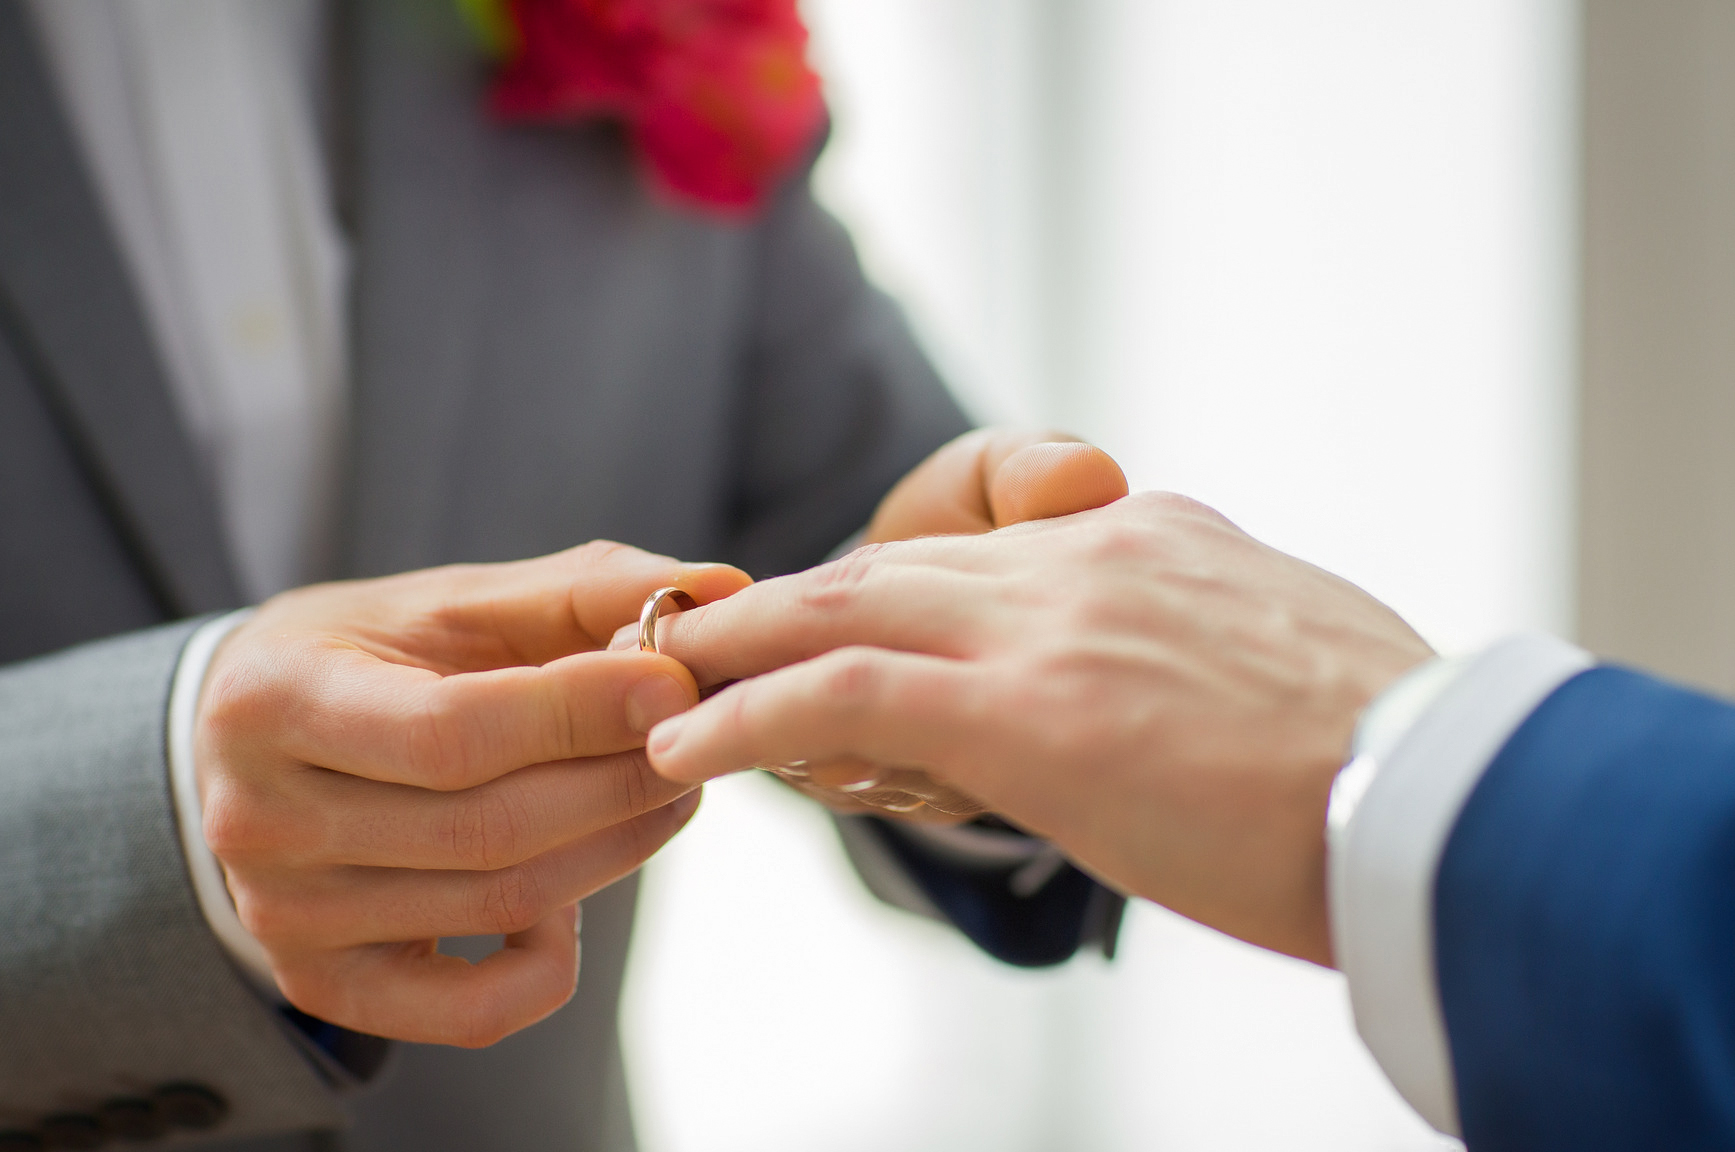 Gay-close-up-of-male-gay-couple-hands-wedding-rings.jpg